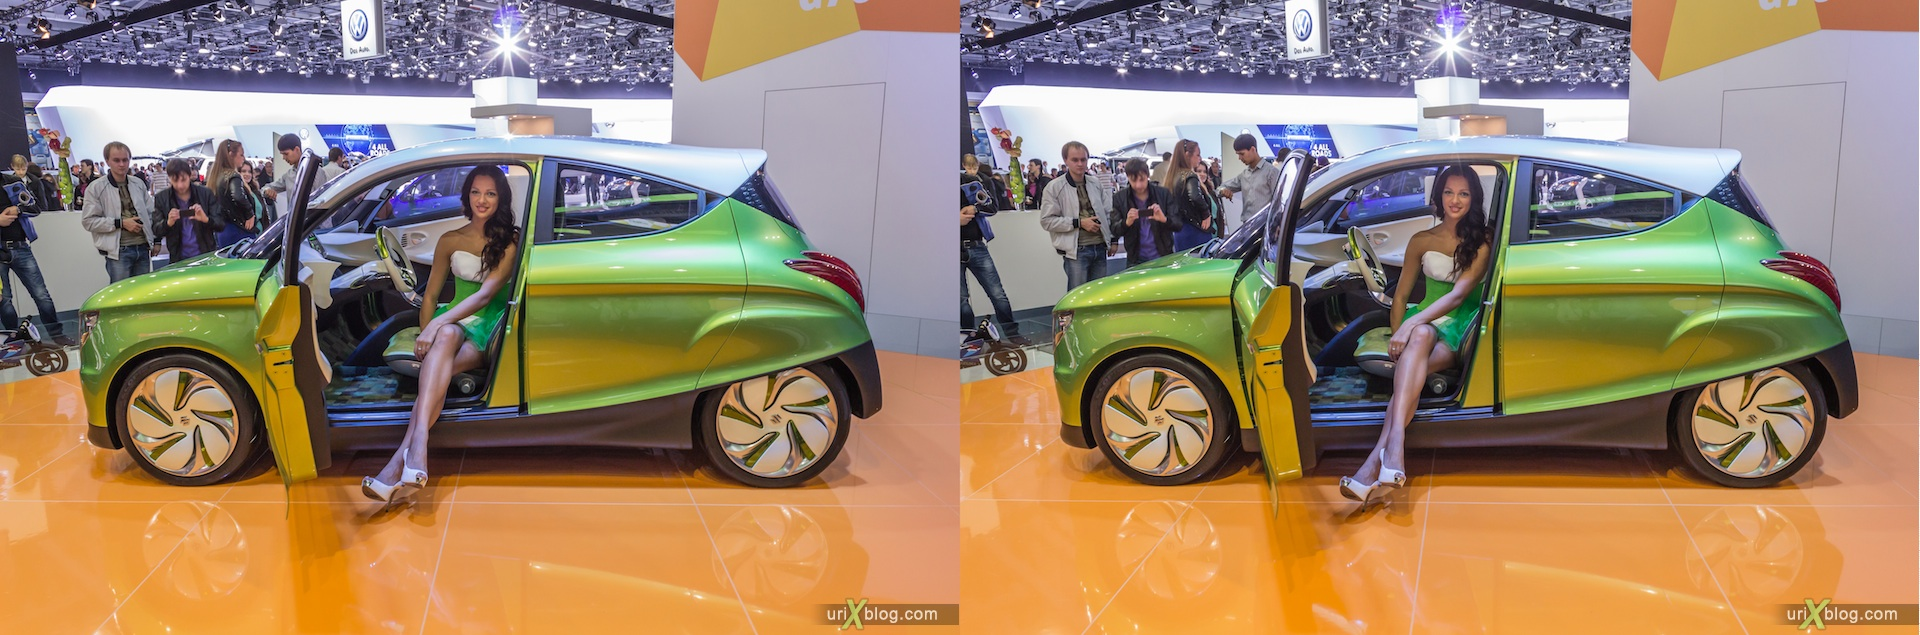 2012, Suzuki G70, girl, model, Moscow International Automobile Salon, auto show, 3D, stereo pair, cross-eyed, crossview